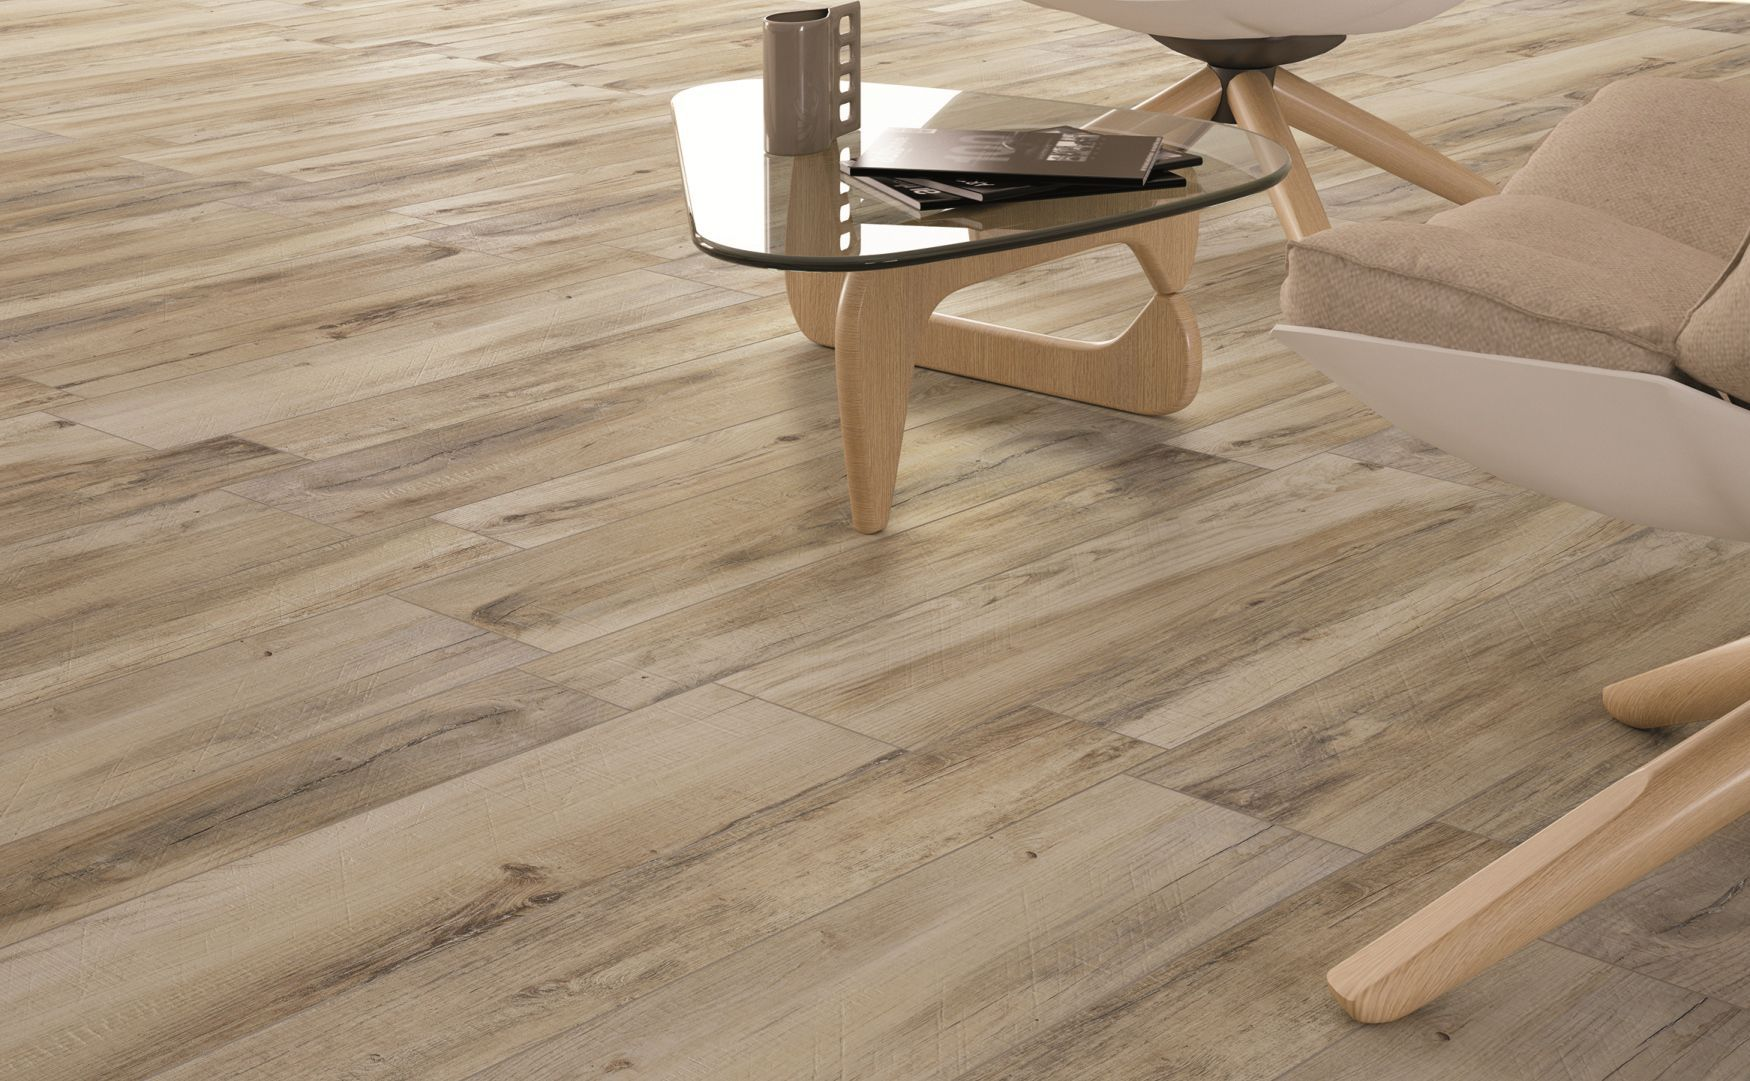 Gres Porcellanato Color Miele.Indoor Tile Floor Porcelain Stoneware Polished